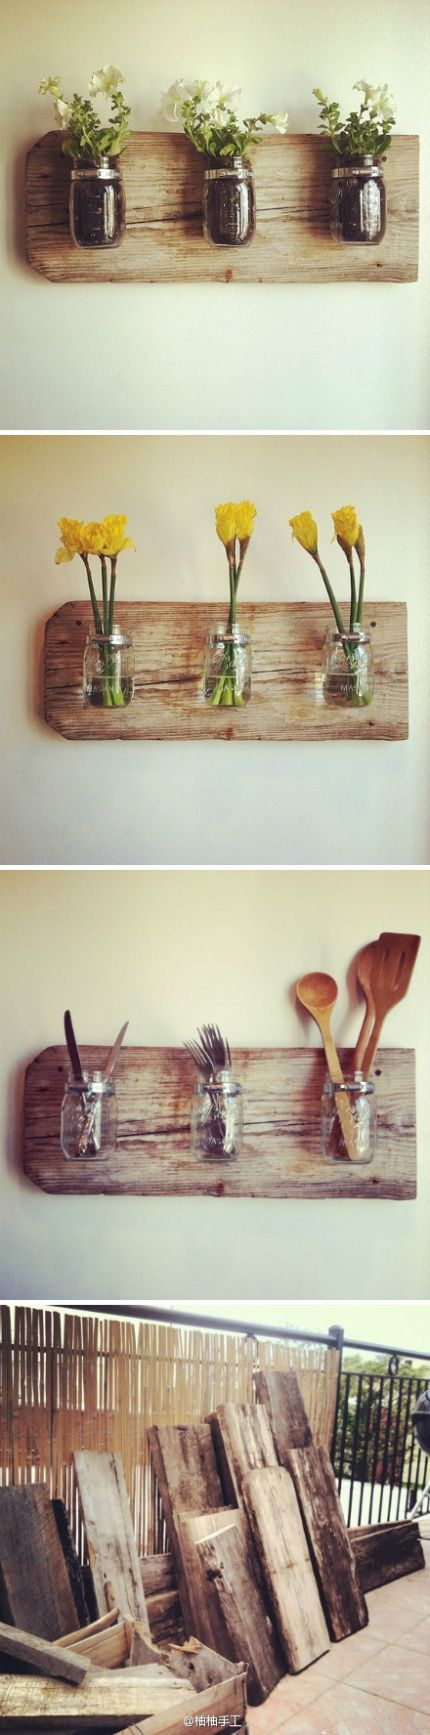 diy projects pinterest   Future DIY Projects via Pinterest   Things and Stuff